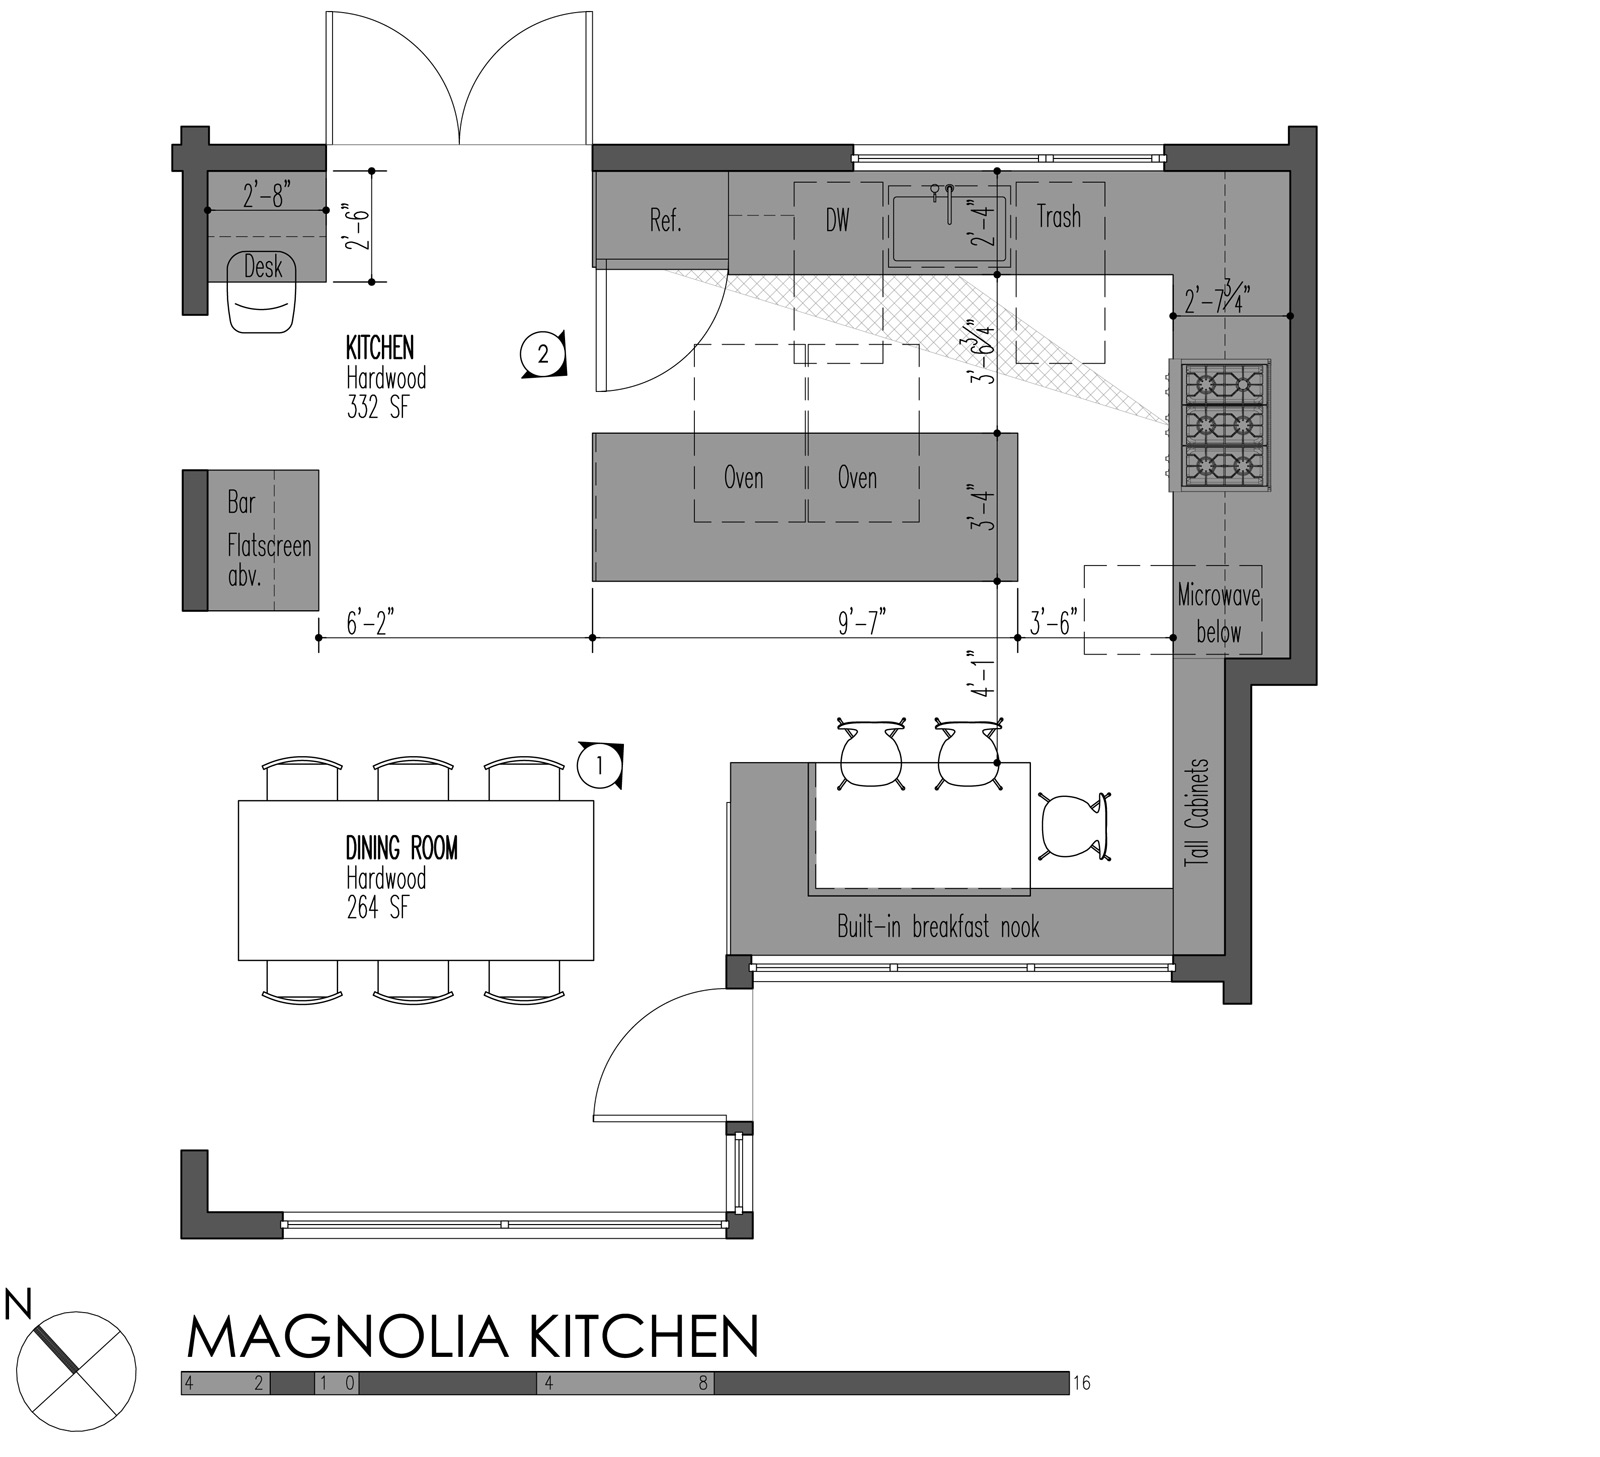 Kitchen Planner: 5 Modern Kitchen Designs & Principles